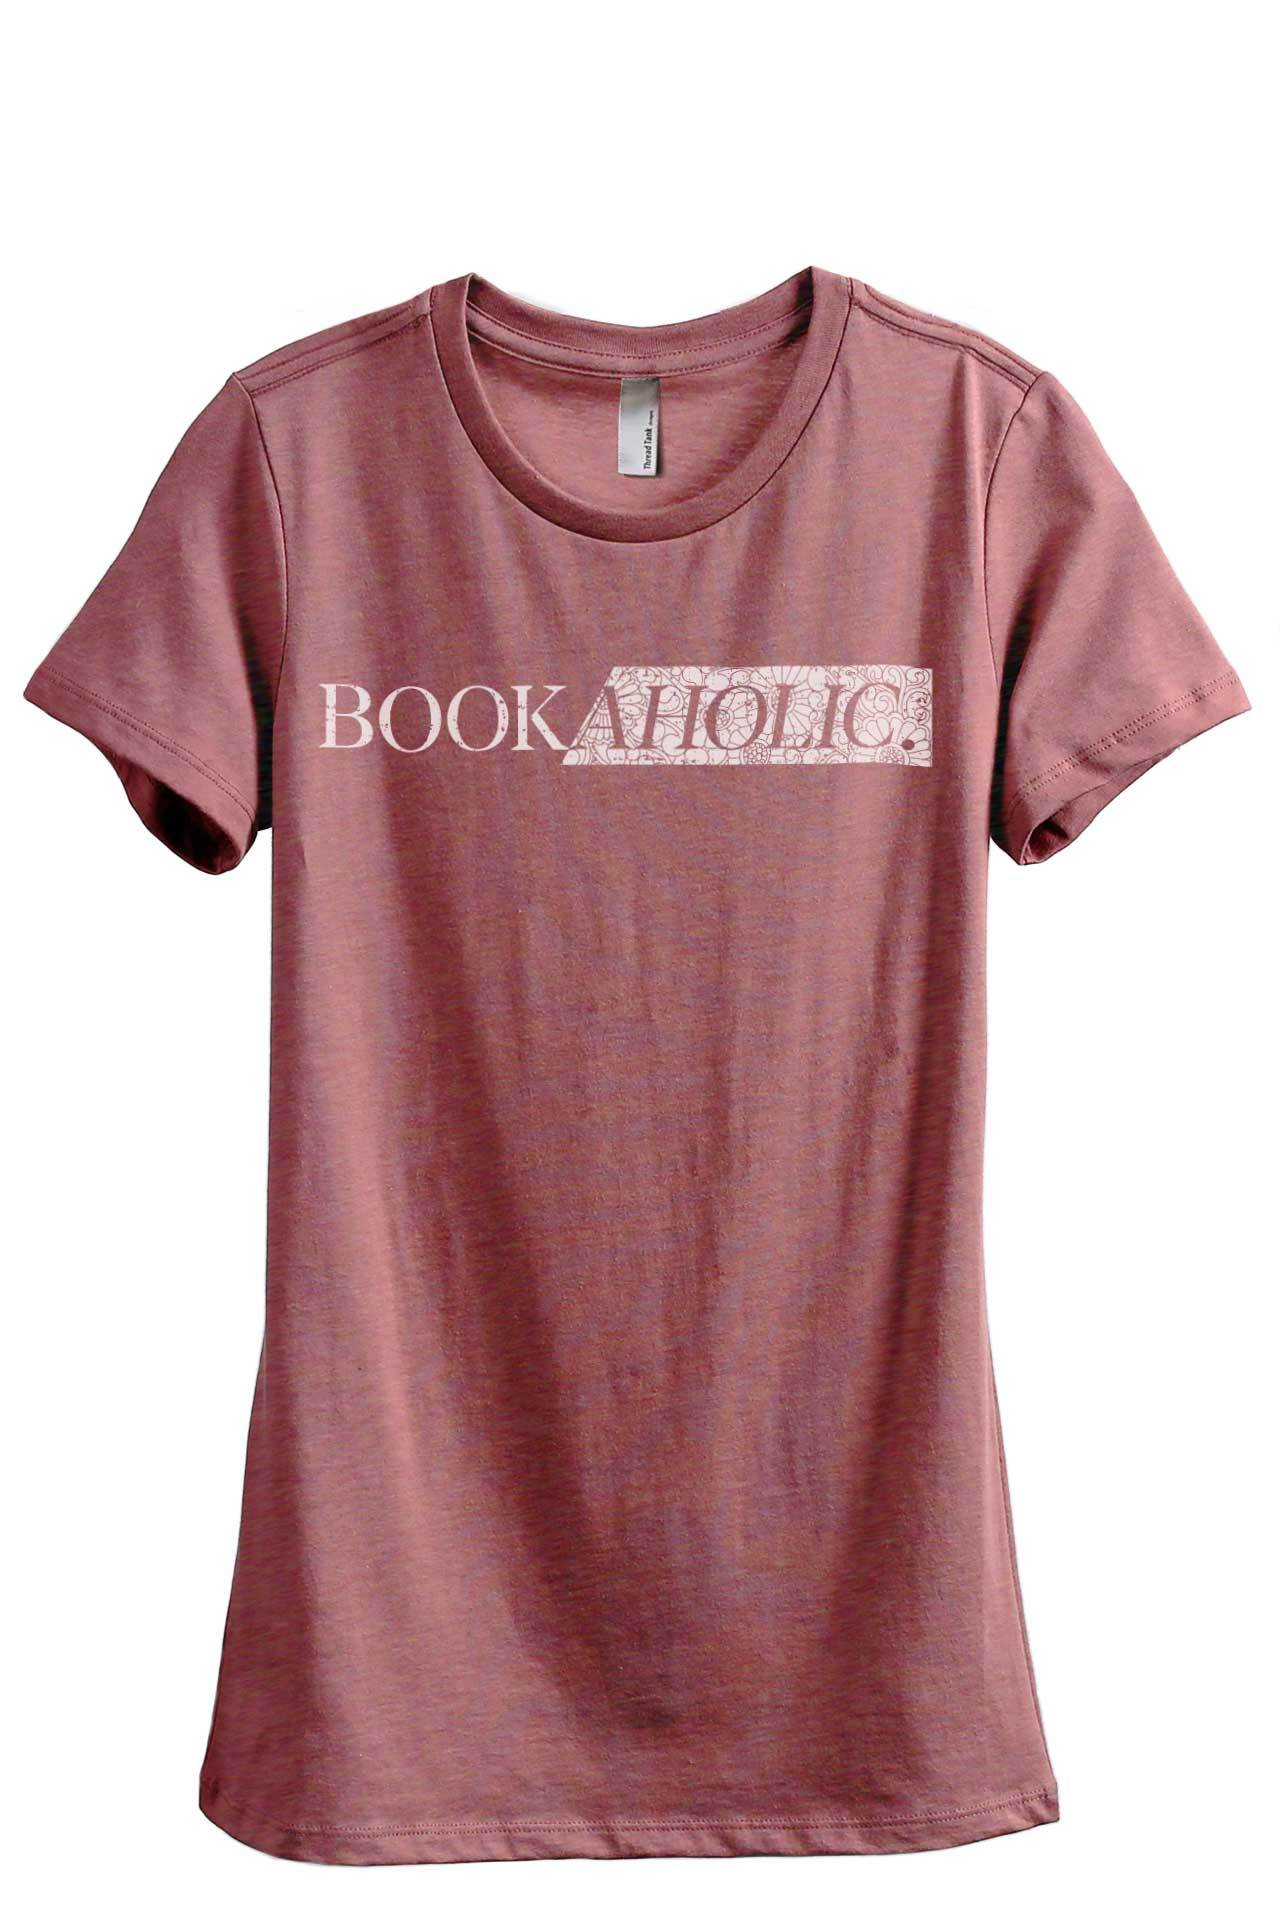 Bookaholic - Thread Tank | Stories You Can Wear | T-Shirts, Tank Tops and Sweatshirts